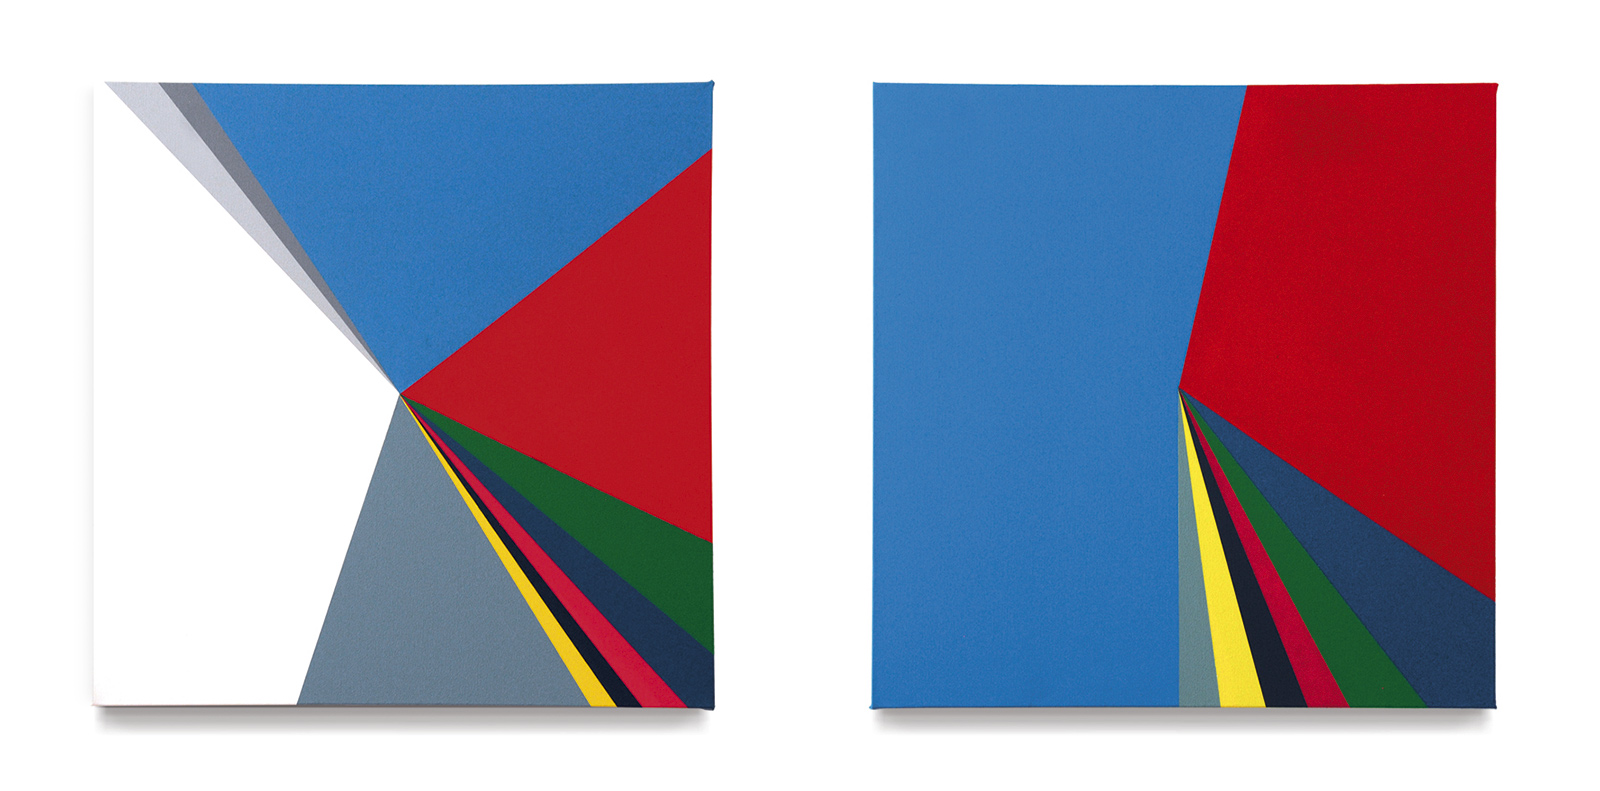 Diptych. «General elections in Spain 2011 (parties, abstention, null and blank votes) and (parties in parliament)», 2013, Acrylic on canvas, 60 x 60 cm each.